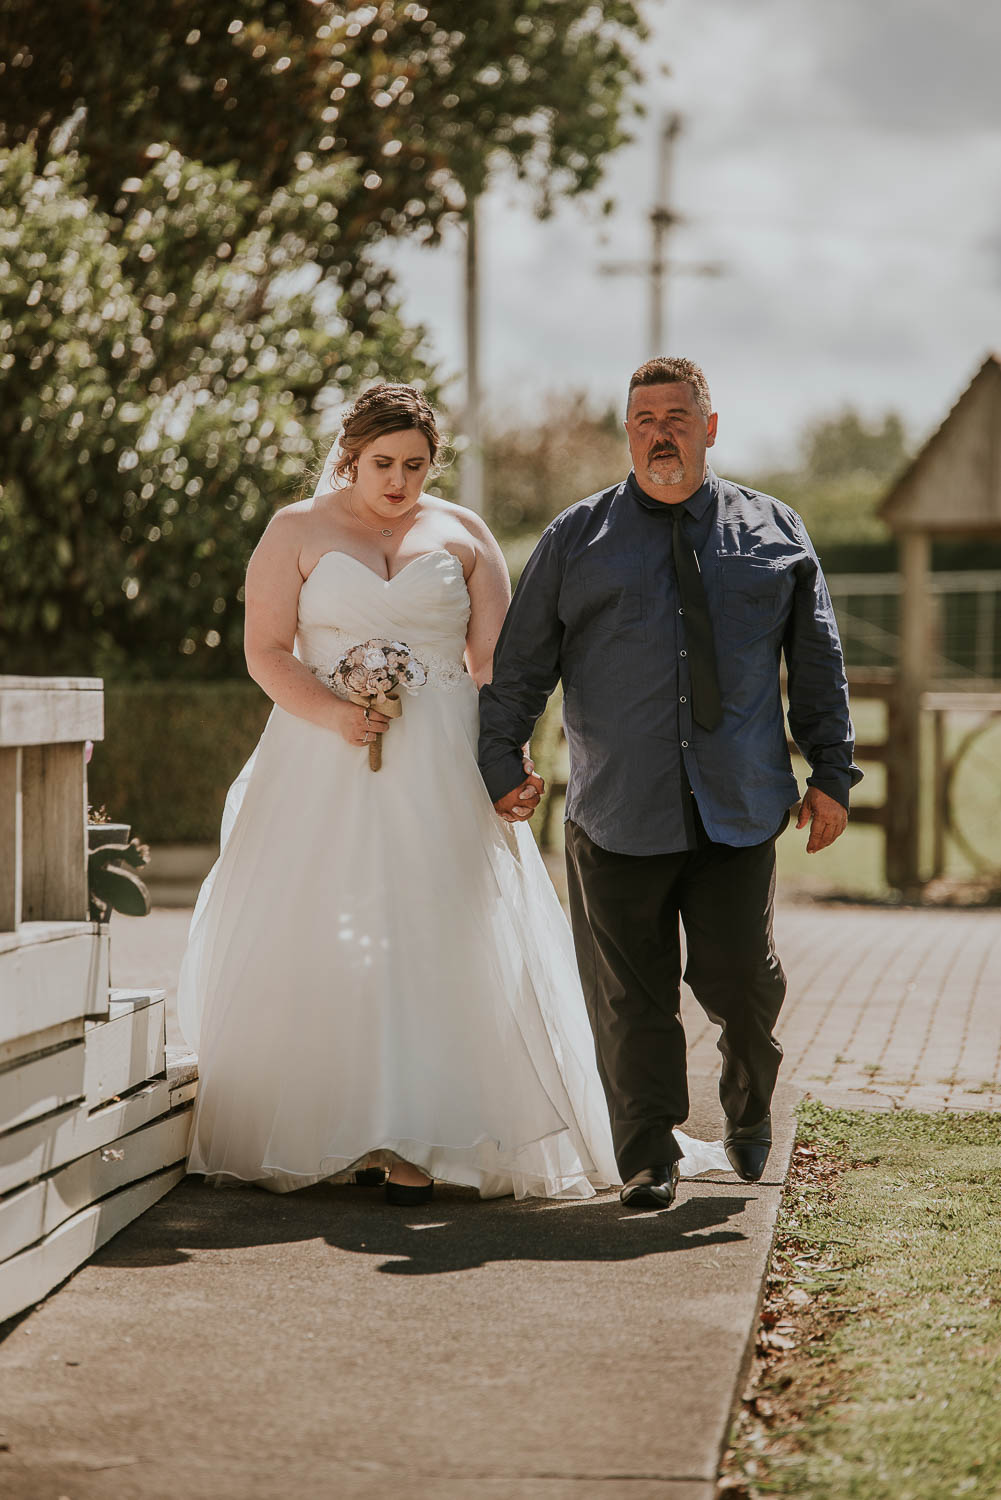 Auckland-Wedding-David-Alysha-Rustic-Farm-63